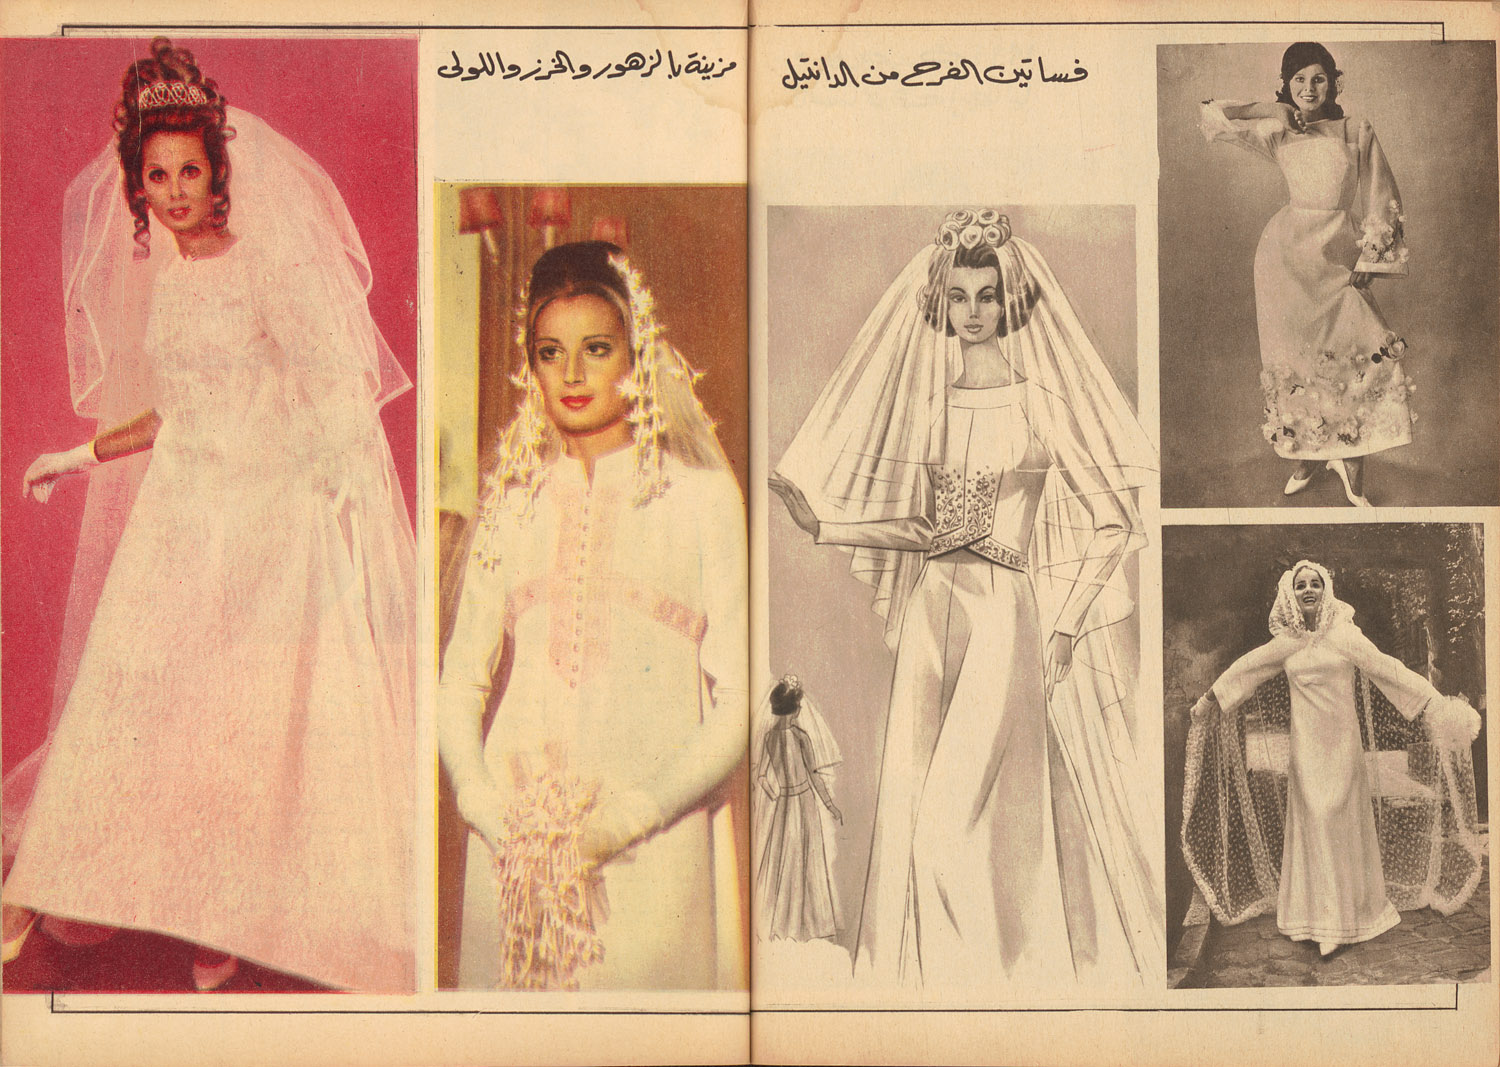 'Wedding dresses with laces, decorated with flowers, beads and pearls'   2014 Self-portraits, photographs, magazine scans, audio interviews (available upon request)  This project explores the status of unmarried women in Lebanon above the age of 30 and questions whether this 'singlehood' is a social stigma nowadays as it was in the past.  I interviewed 5 women, all over 30 and unmarried be it by choice, as a result of divorce, or any other reason.  The traditional English rhyme goes:  '  Something Old, Something New, Something Borrowed, Something Blue, and A Sixpence in your Shoe ' . This rhyme denotes what the bride should wear on her wedding day for good luck. I have employed this old rhyme in order to transplant its elements according to Lebanese traditions and to explore the tension between those objects and visuals with the women's experiences, which also resonate in my own personal life.